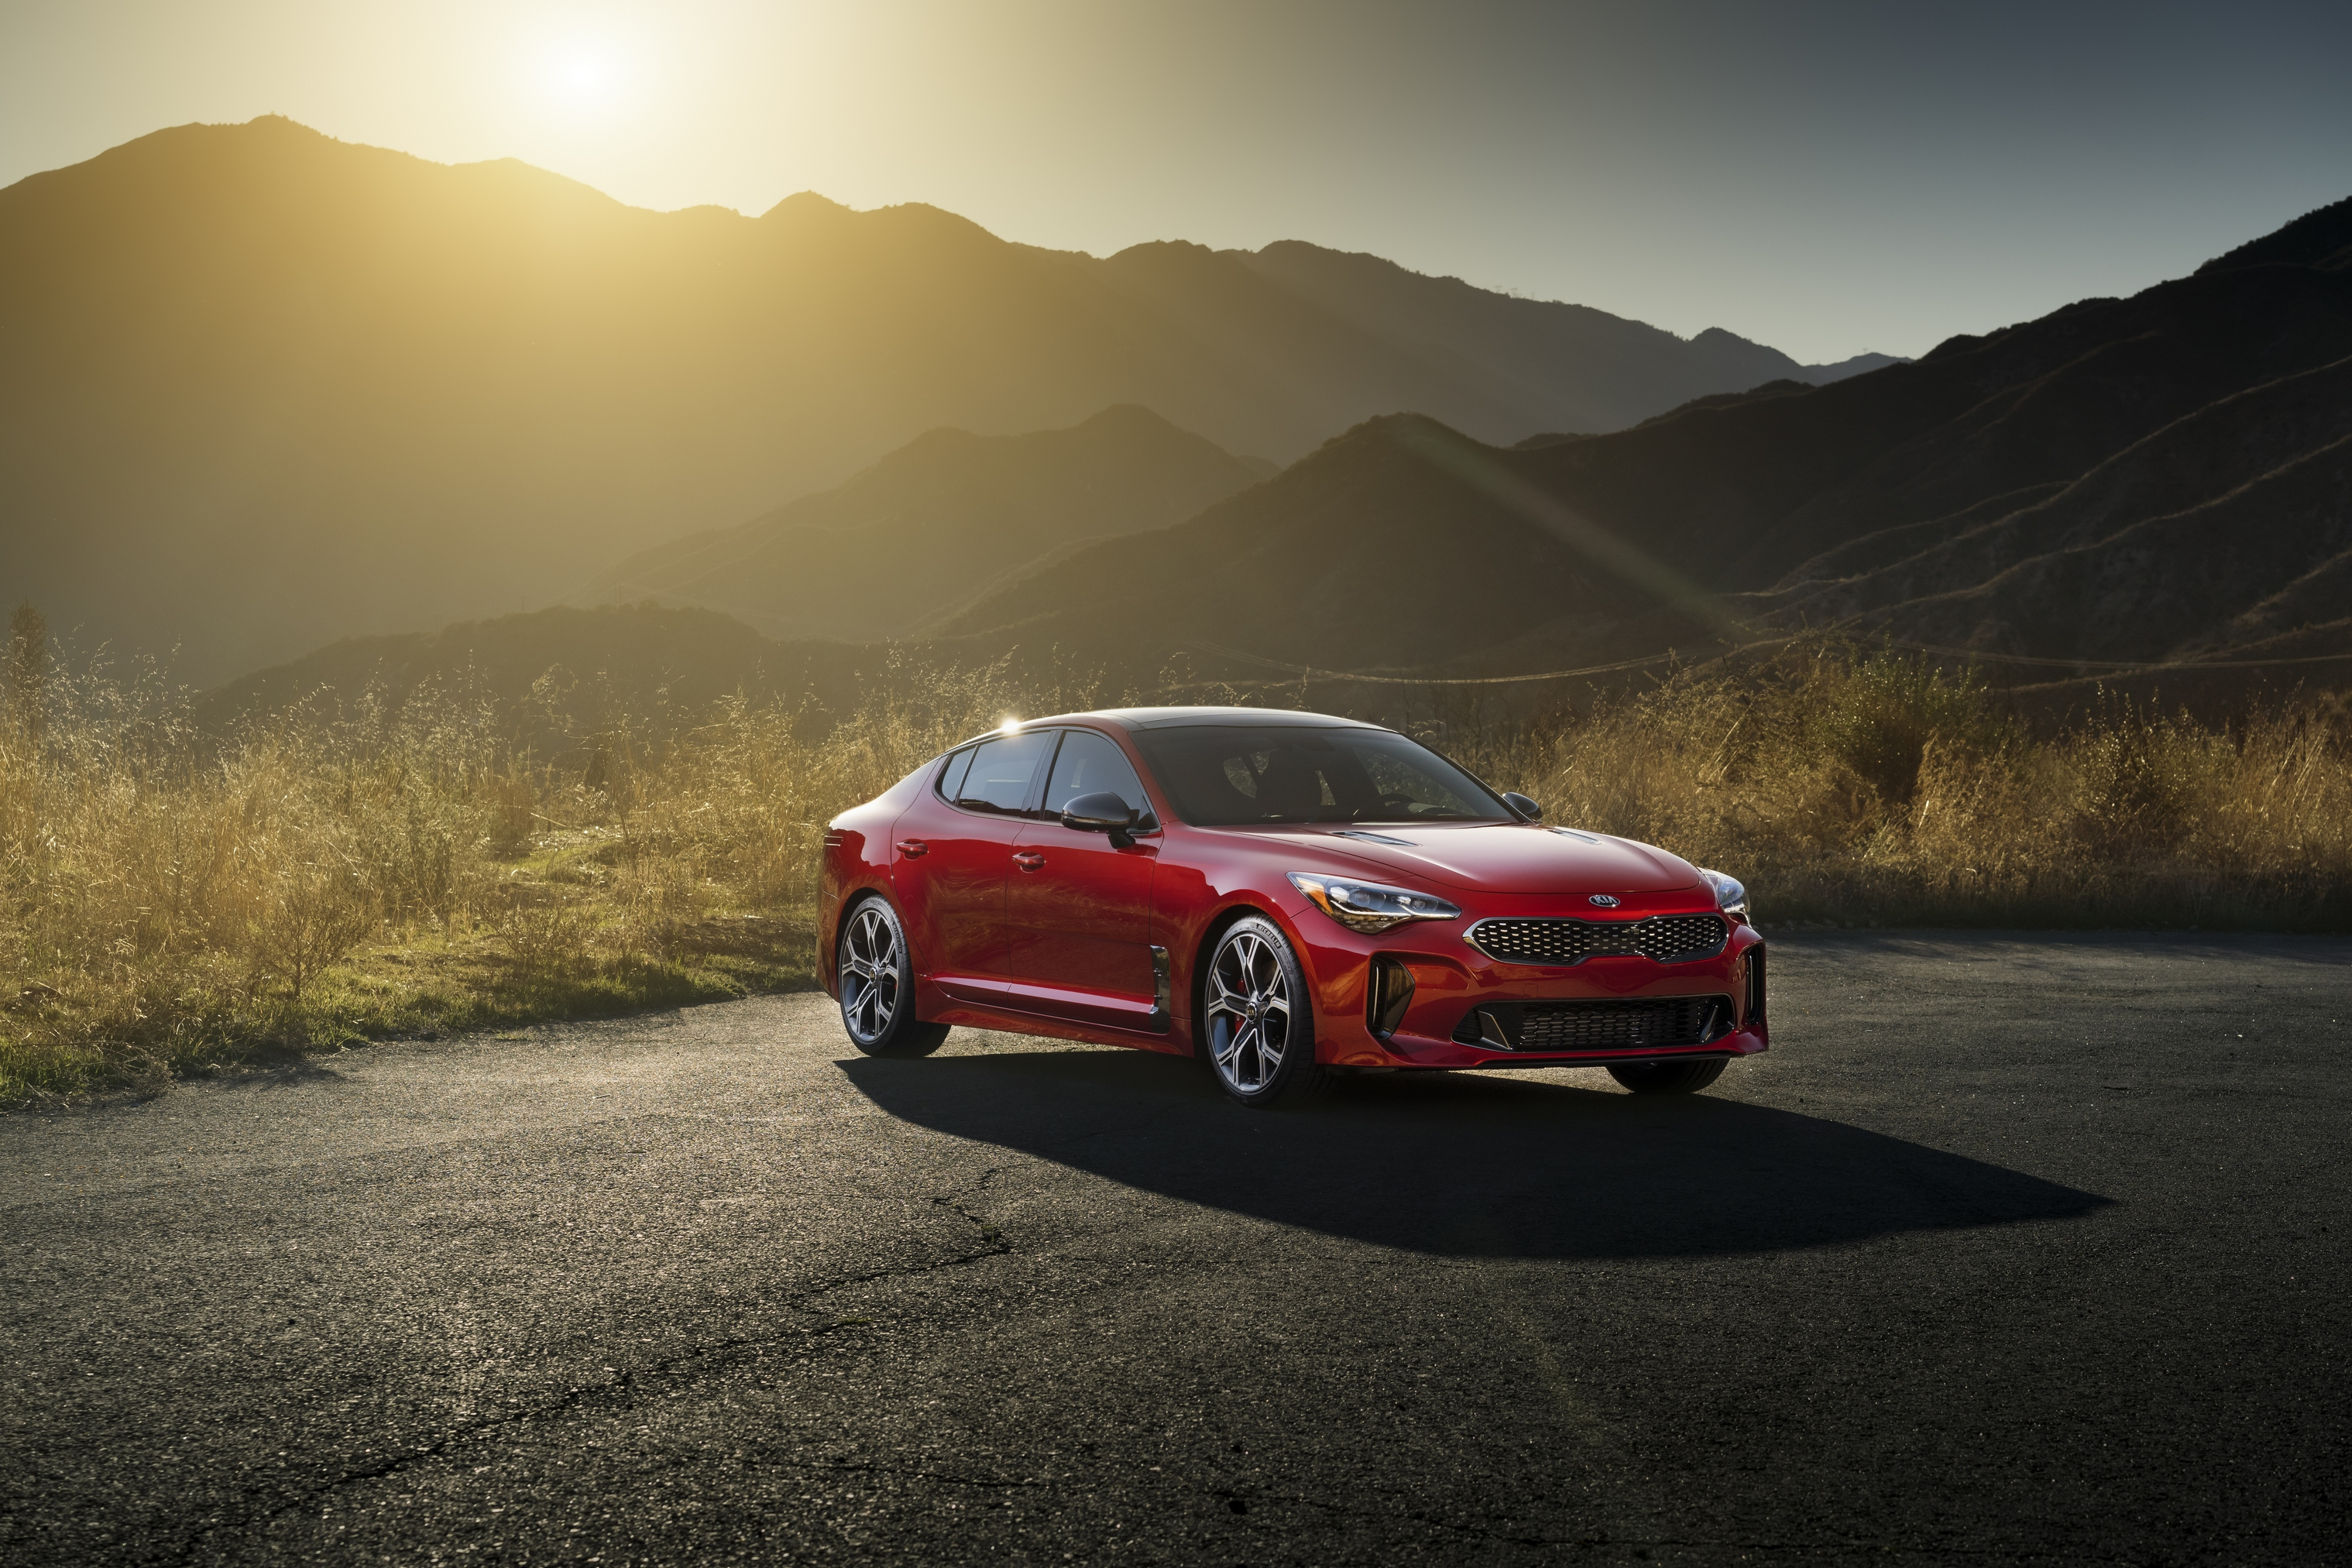 detroit the techtly car in kia sea practical cars production sizzles show of that a sedan auto sports is stinger